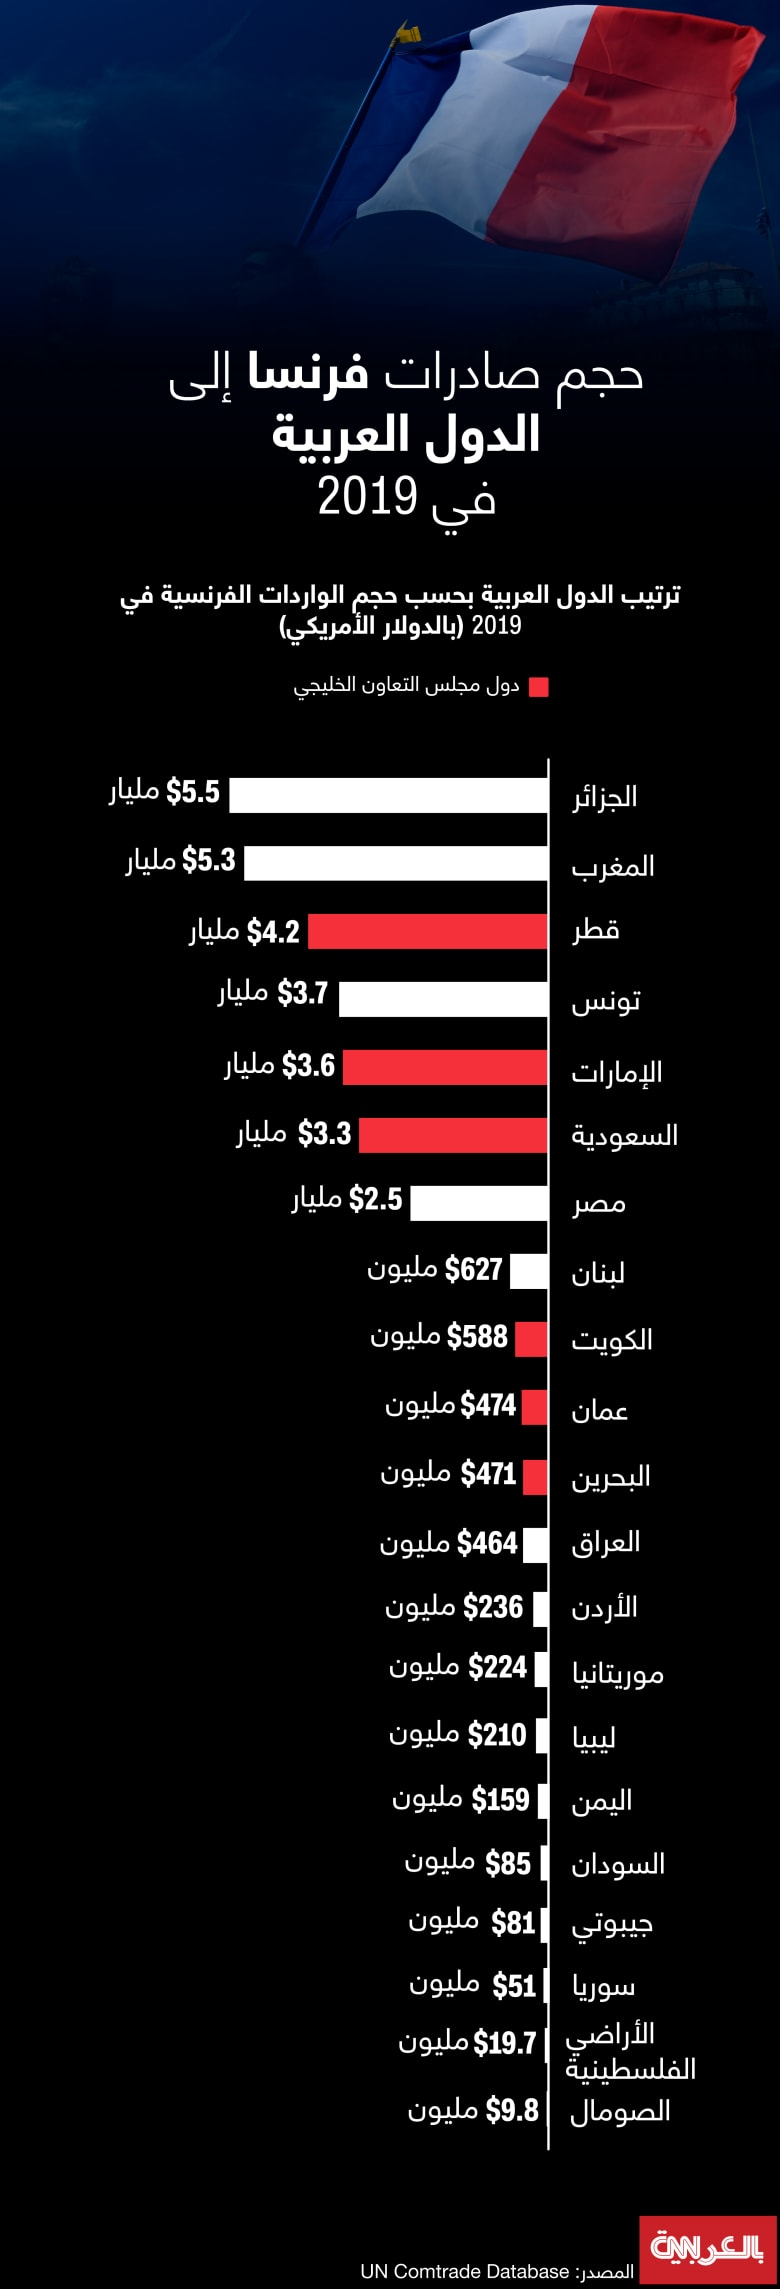 France-exports-arab-countries-2019